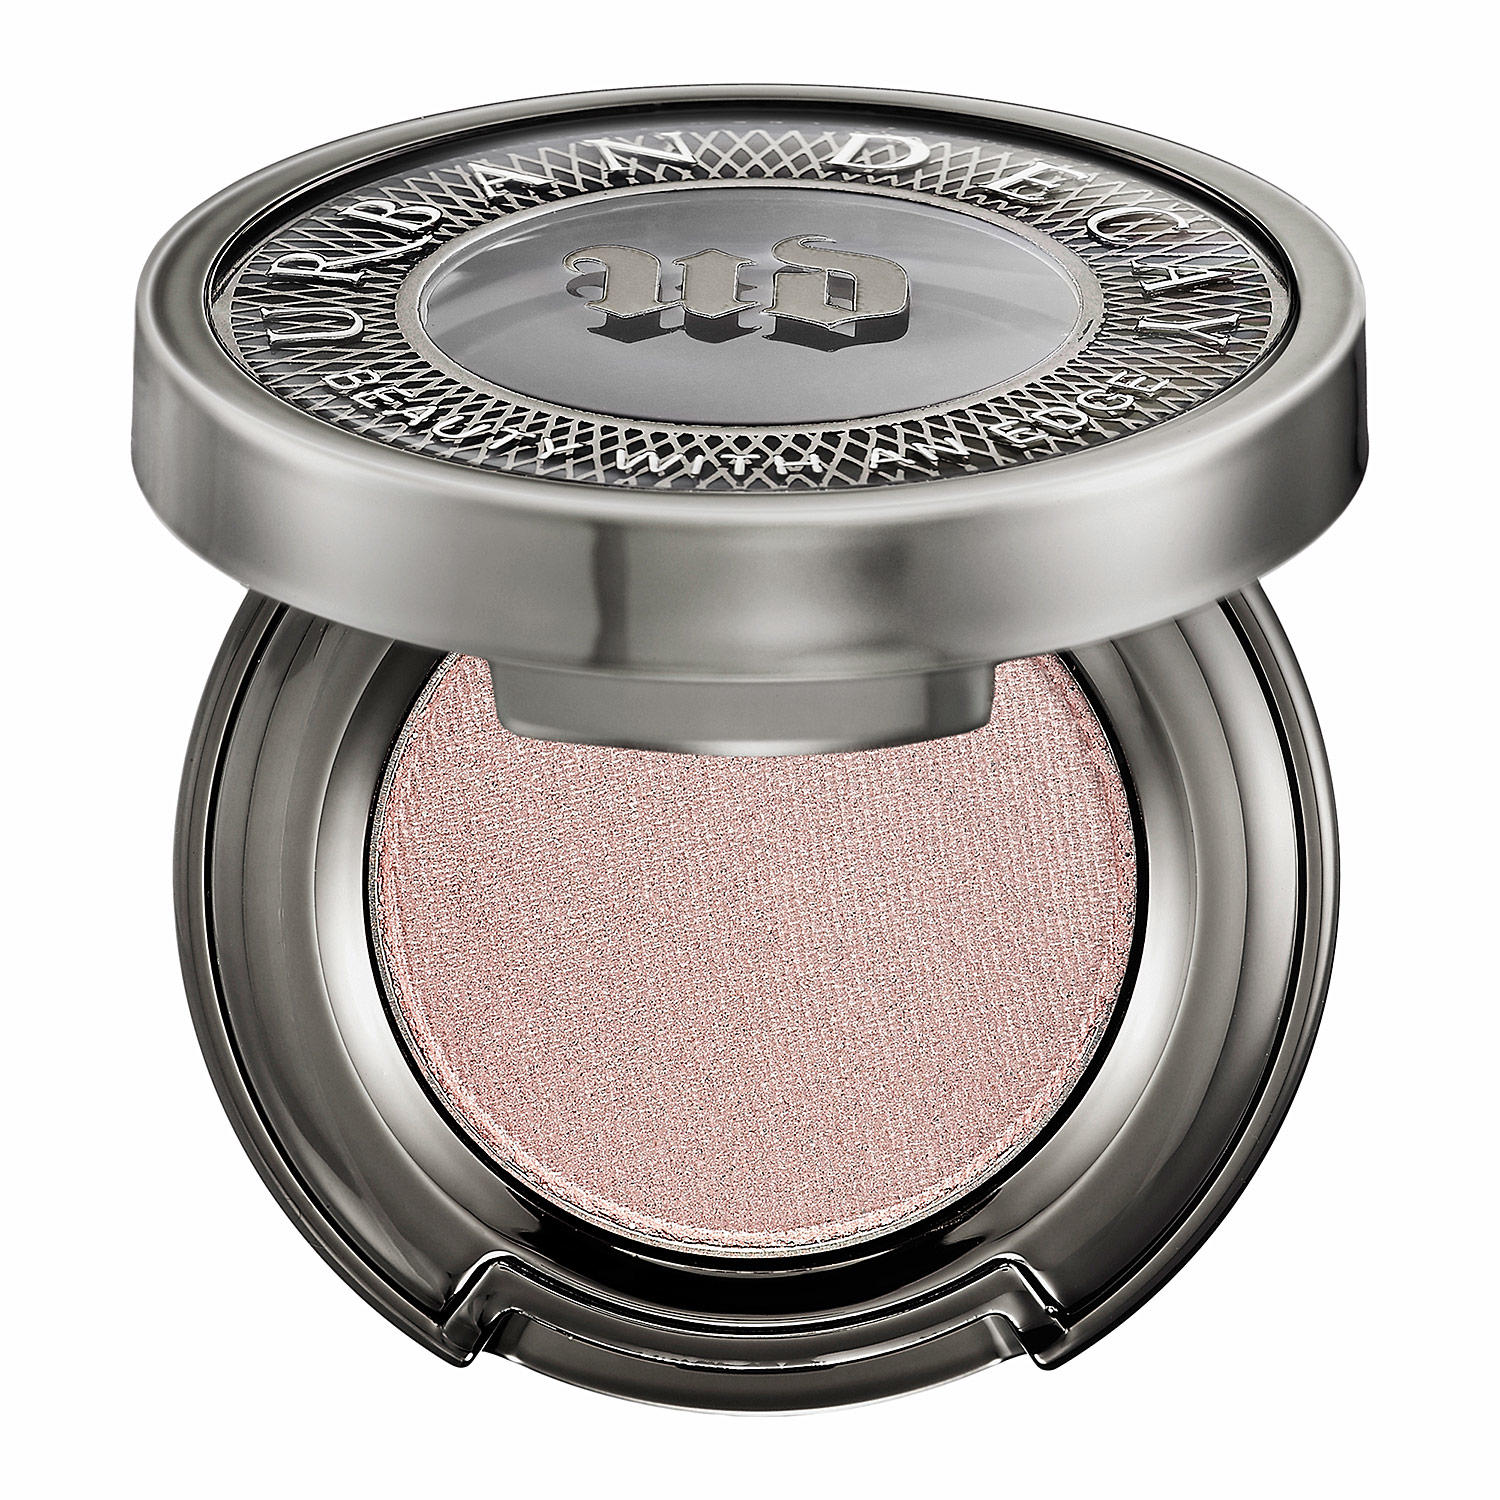 Urban Decay Eyeshadow Midnight Cowboy